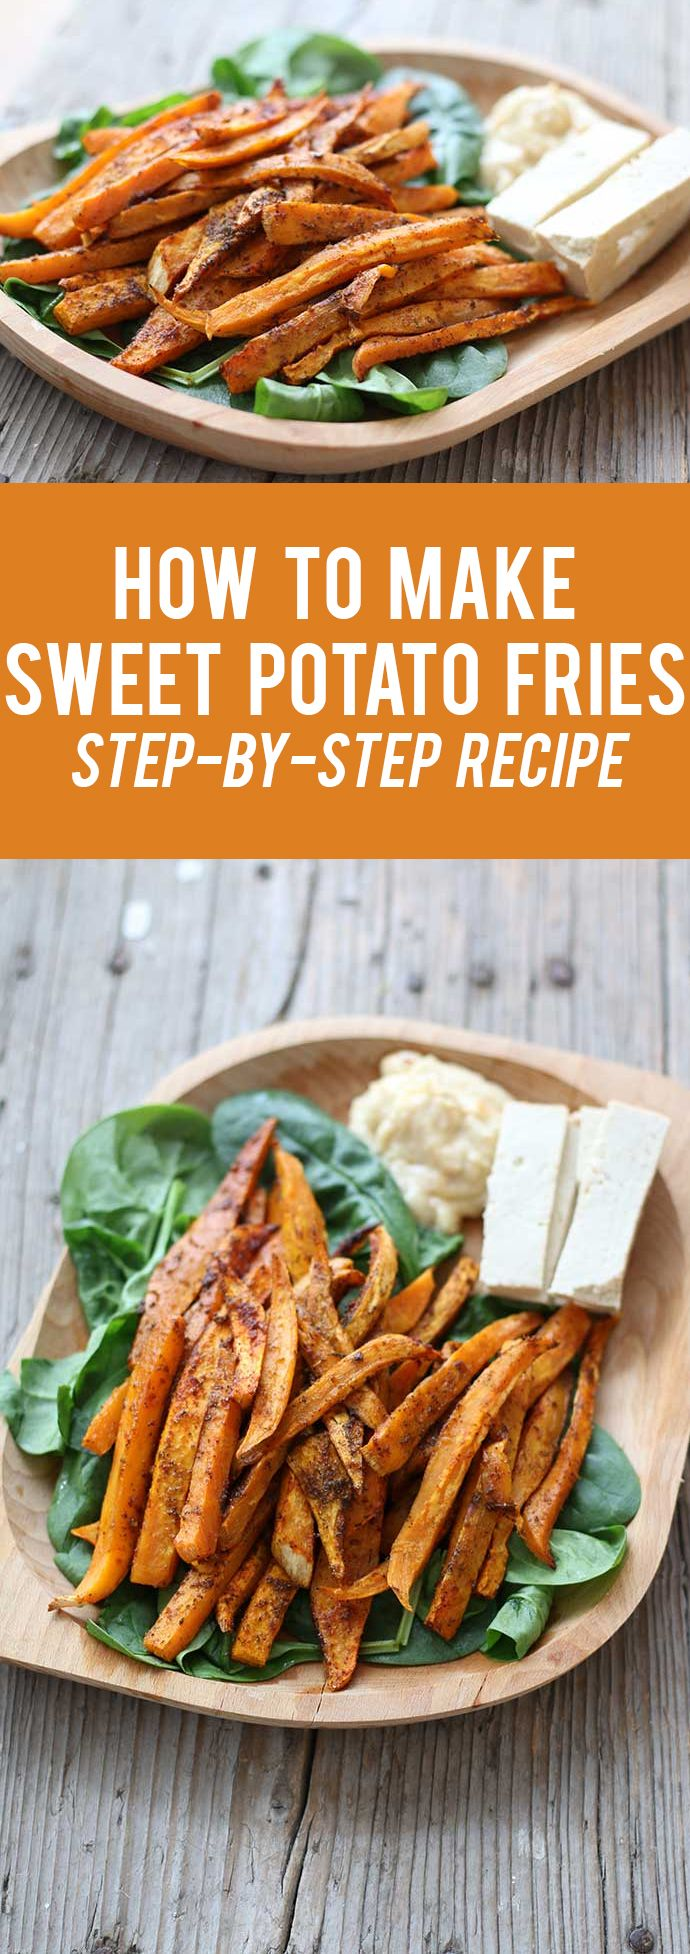 How to Make Sweet Potato Fries | Step-by-Step Recipe |  Here's how to make sweet potato fries by following this easy, step-by-step recipe! Also get some delicious dipping sauce ideas for these sweet potato fries.